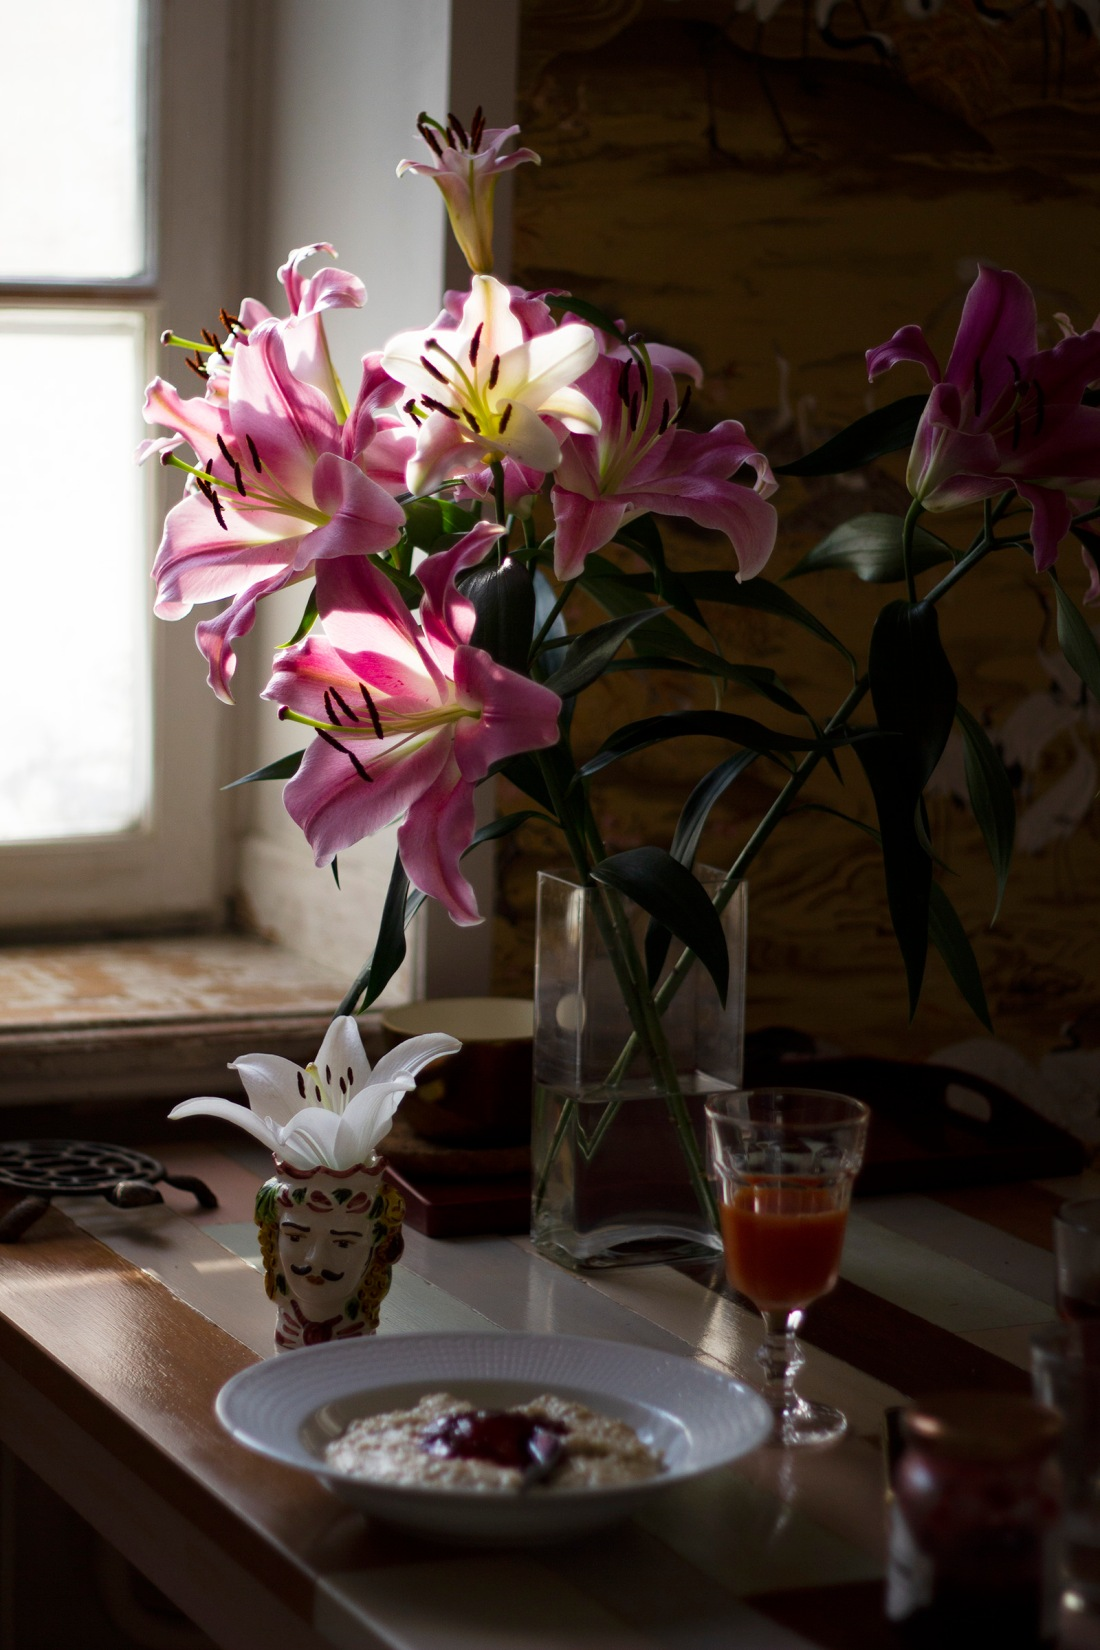 pink and white lilies and a sicilian ceramic head vase during breakfast hour